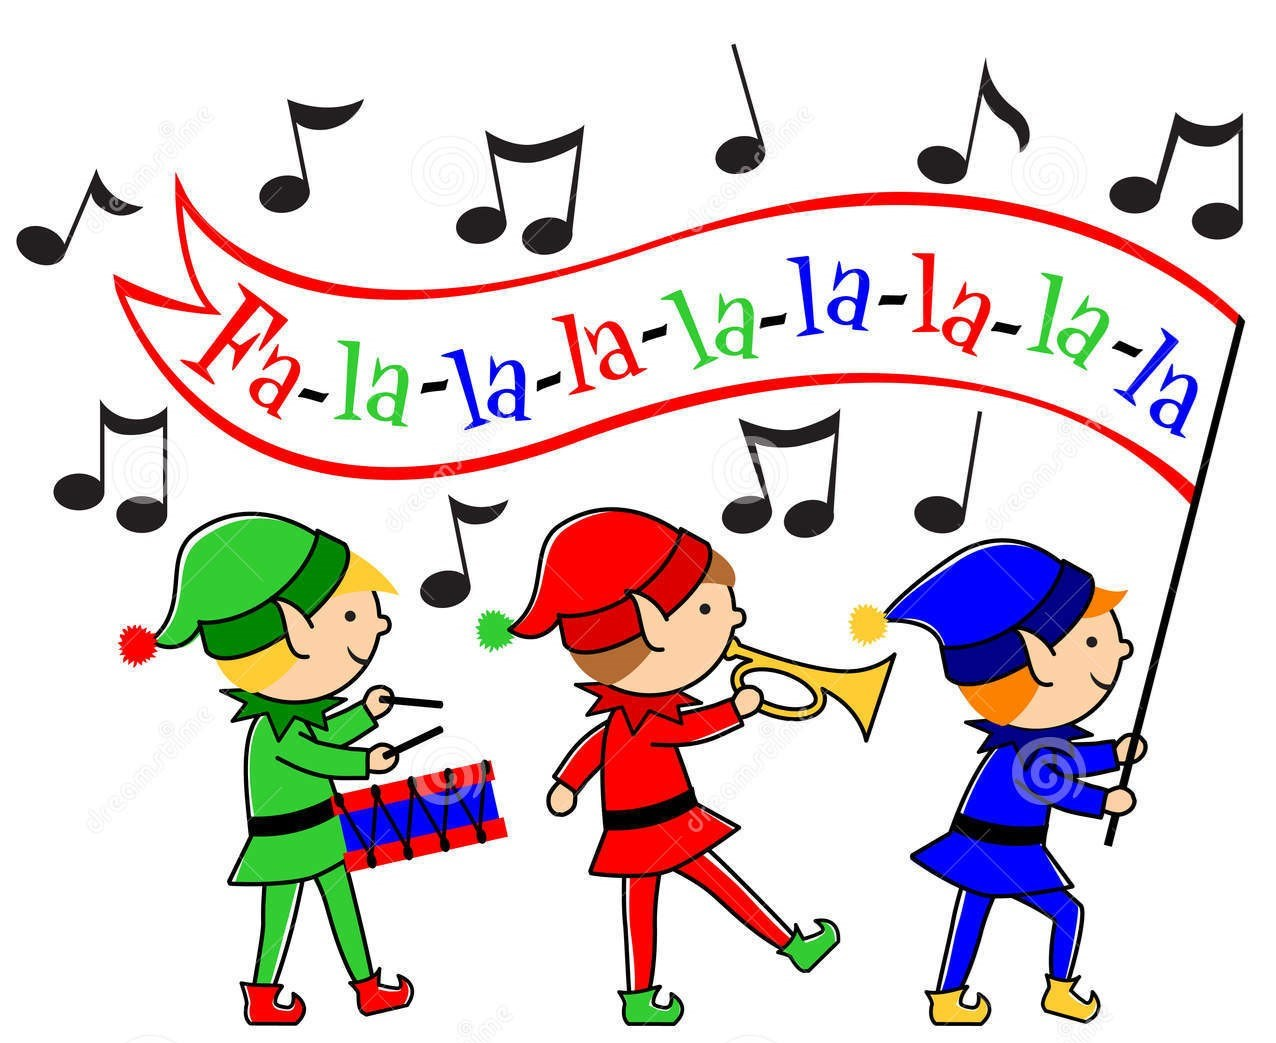 christmas-elves-musical-parade-eps-22082852.jpg